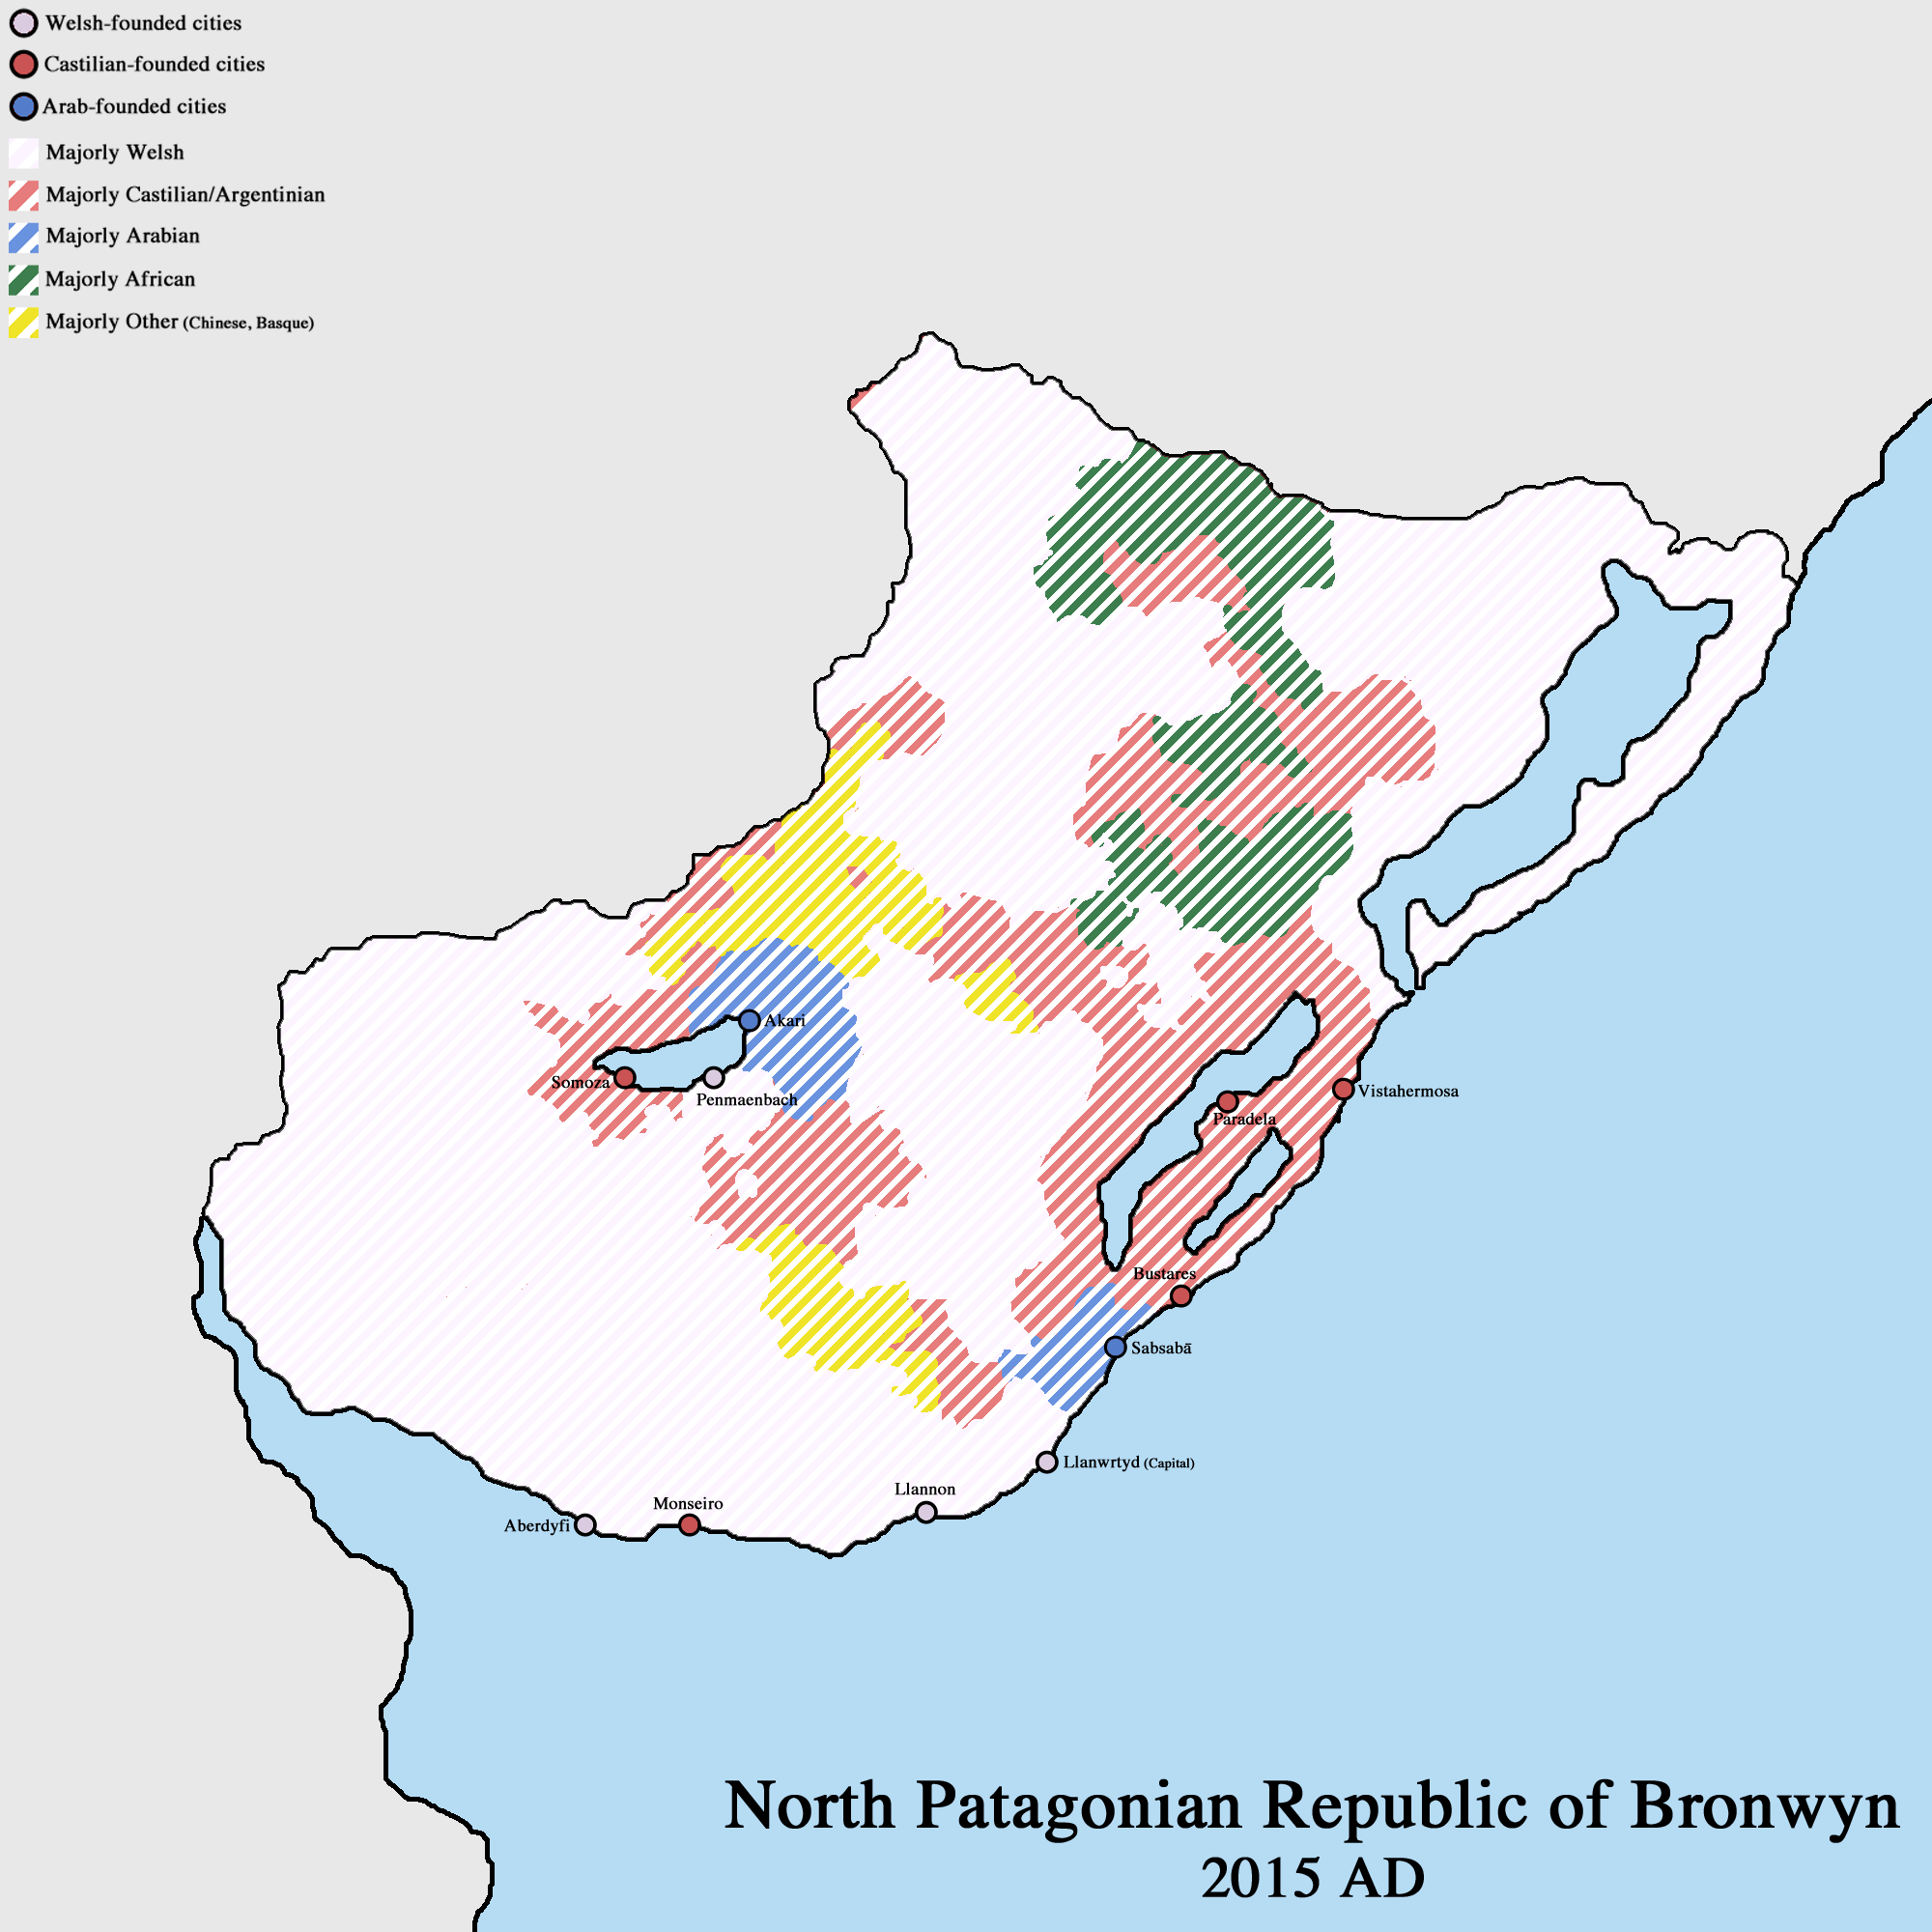 North Patagonian Republic of Bronwyn - VINW by Upvoteanthology